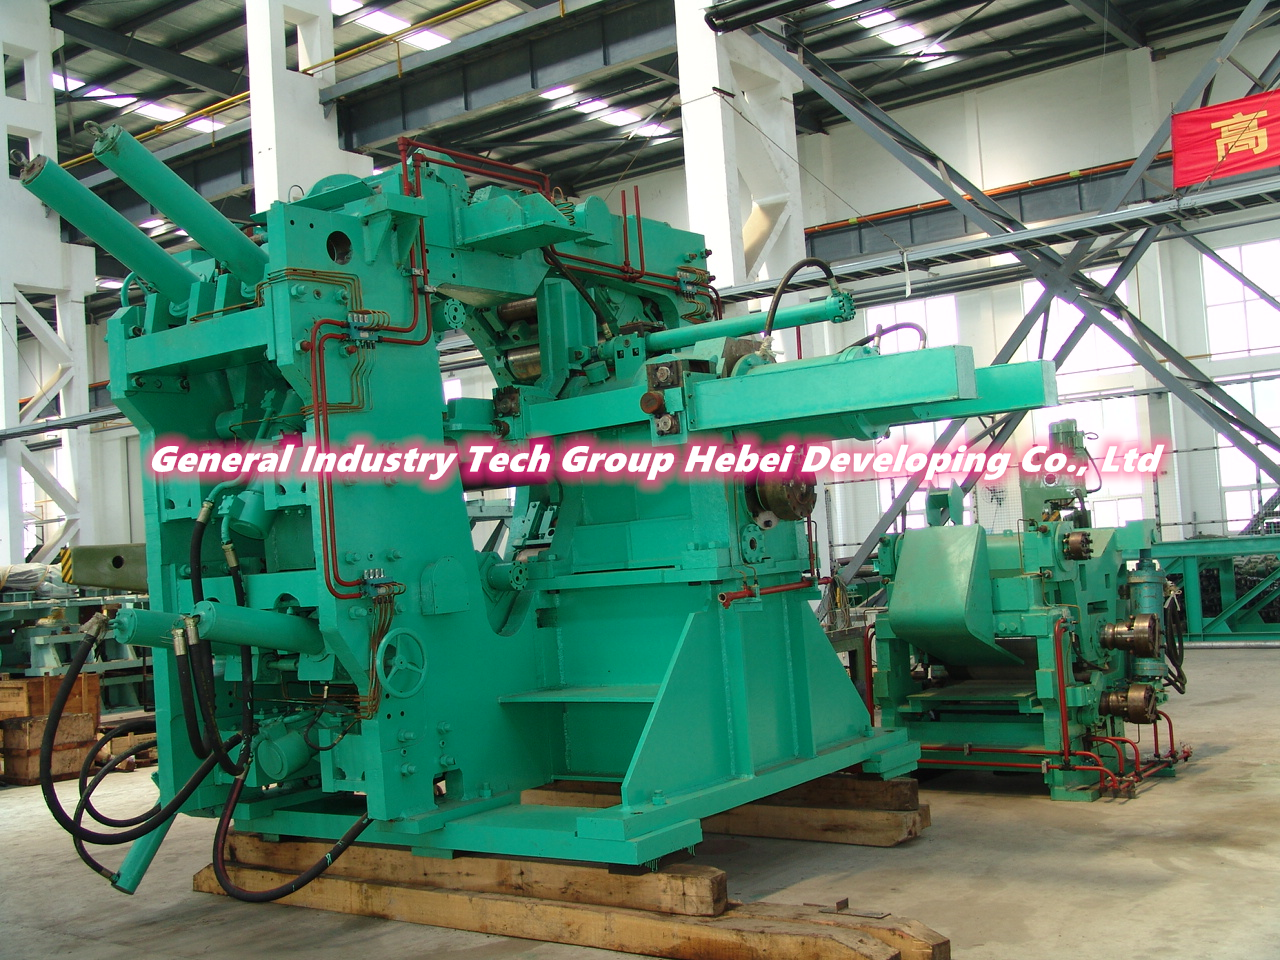 Horizontal recoiler process characteristics and process